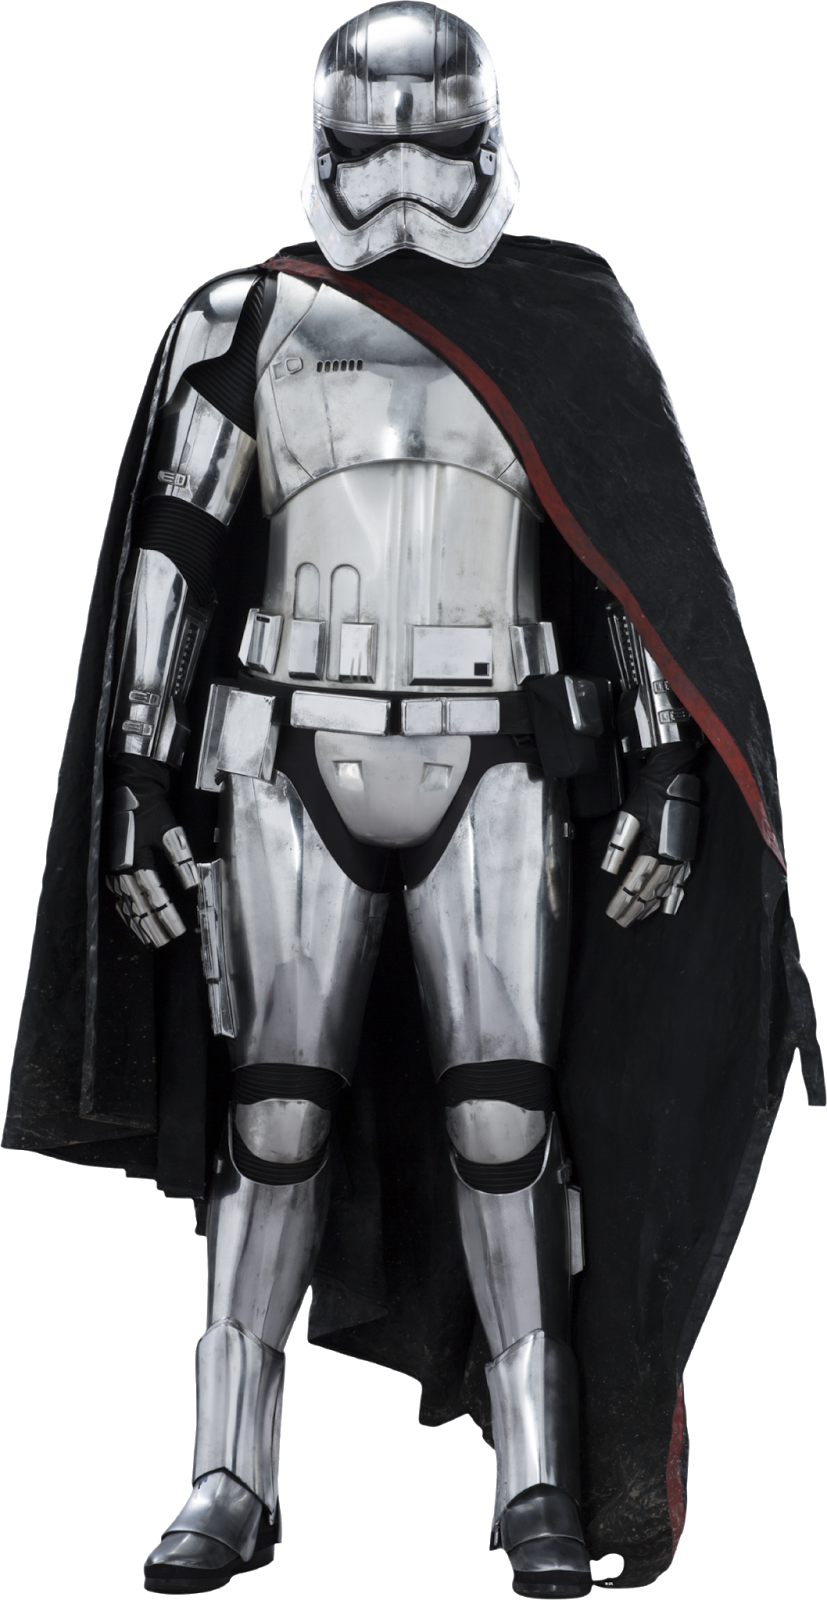 Bb Kylo Armour Character Fictional Ren Phasma PNG Image